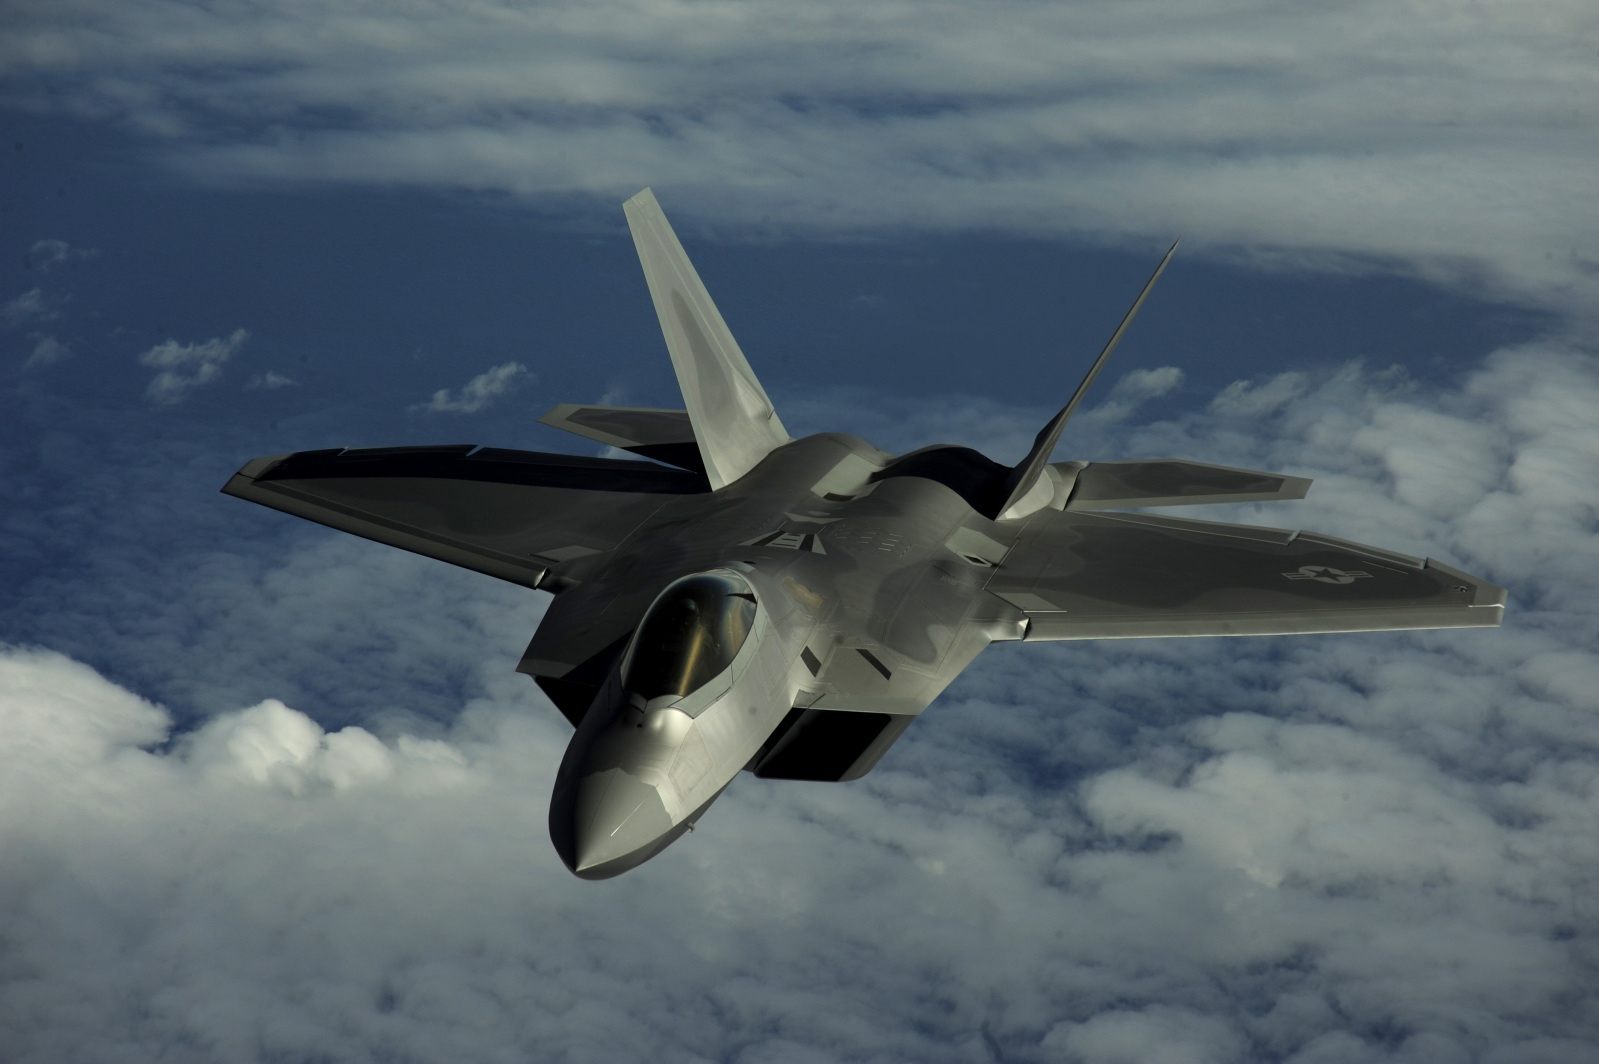 Free Download F 22 Raptor Wallpaper Hd Wallpapers 1599x1064 For